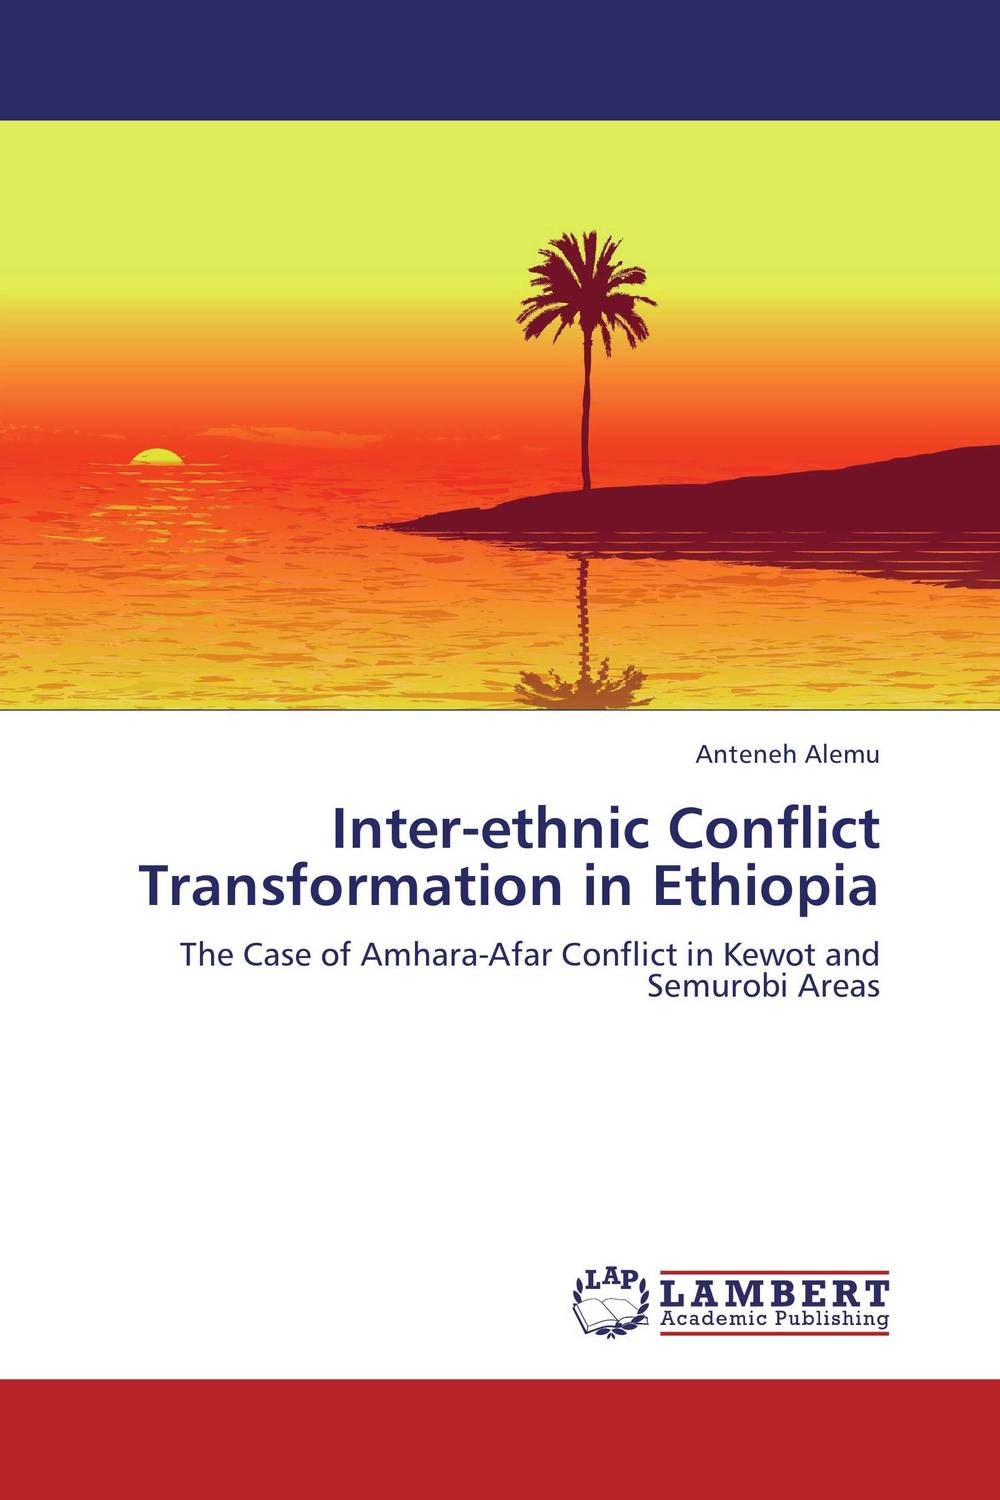 Фото Inter-ethnic Conflict Transformation in Ethiopia cervical cancer in amhara region in ethiopia